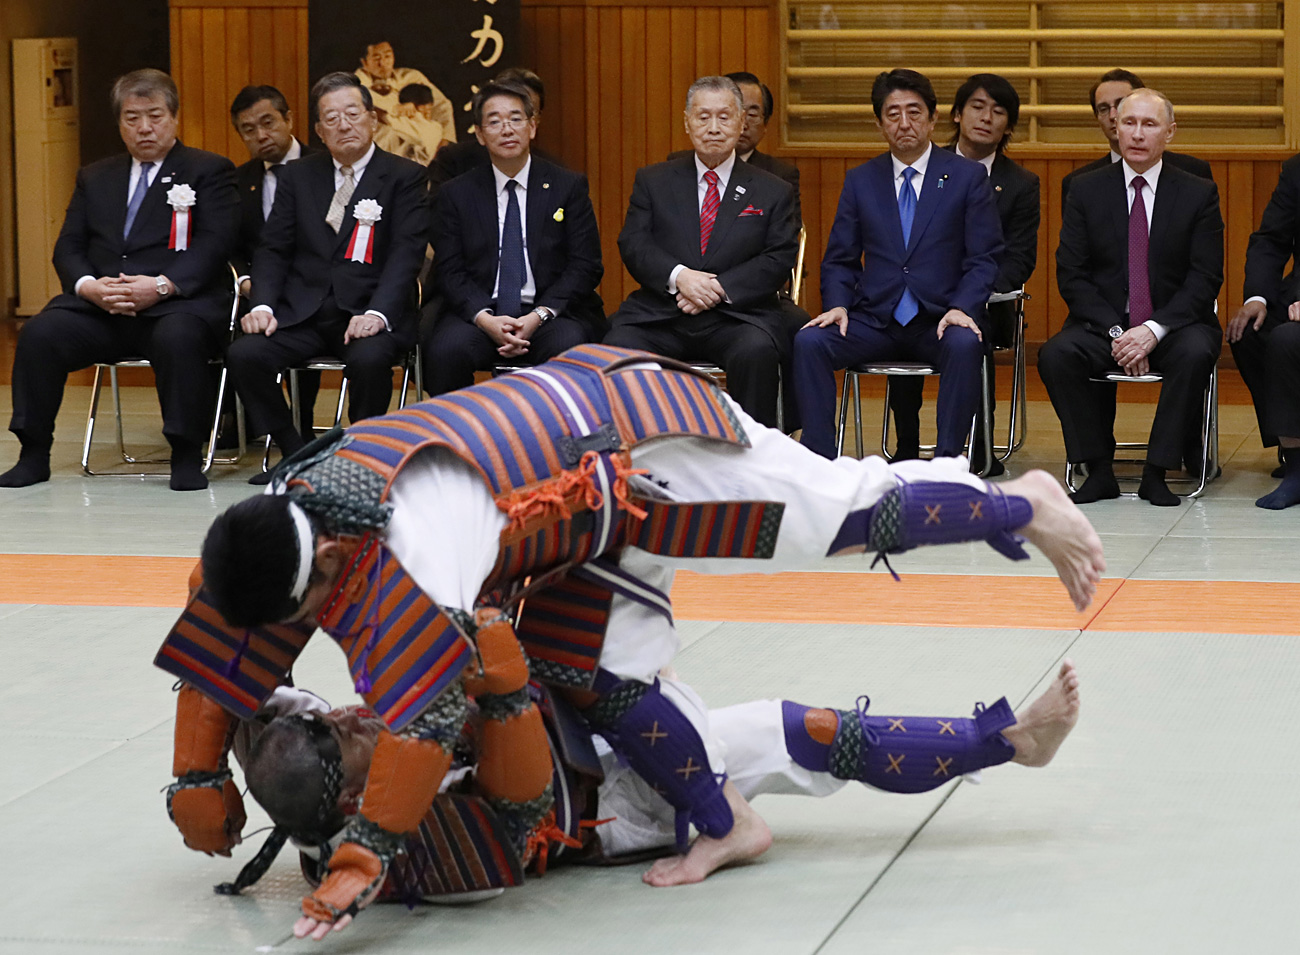 Russian President Vladimir Putin and Japanese Prime Minister Shinzo Abe watch a demonstration during their visit at Kodokan judo hall in Tokyo, Japan.